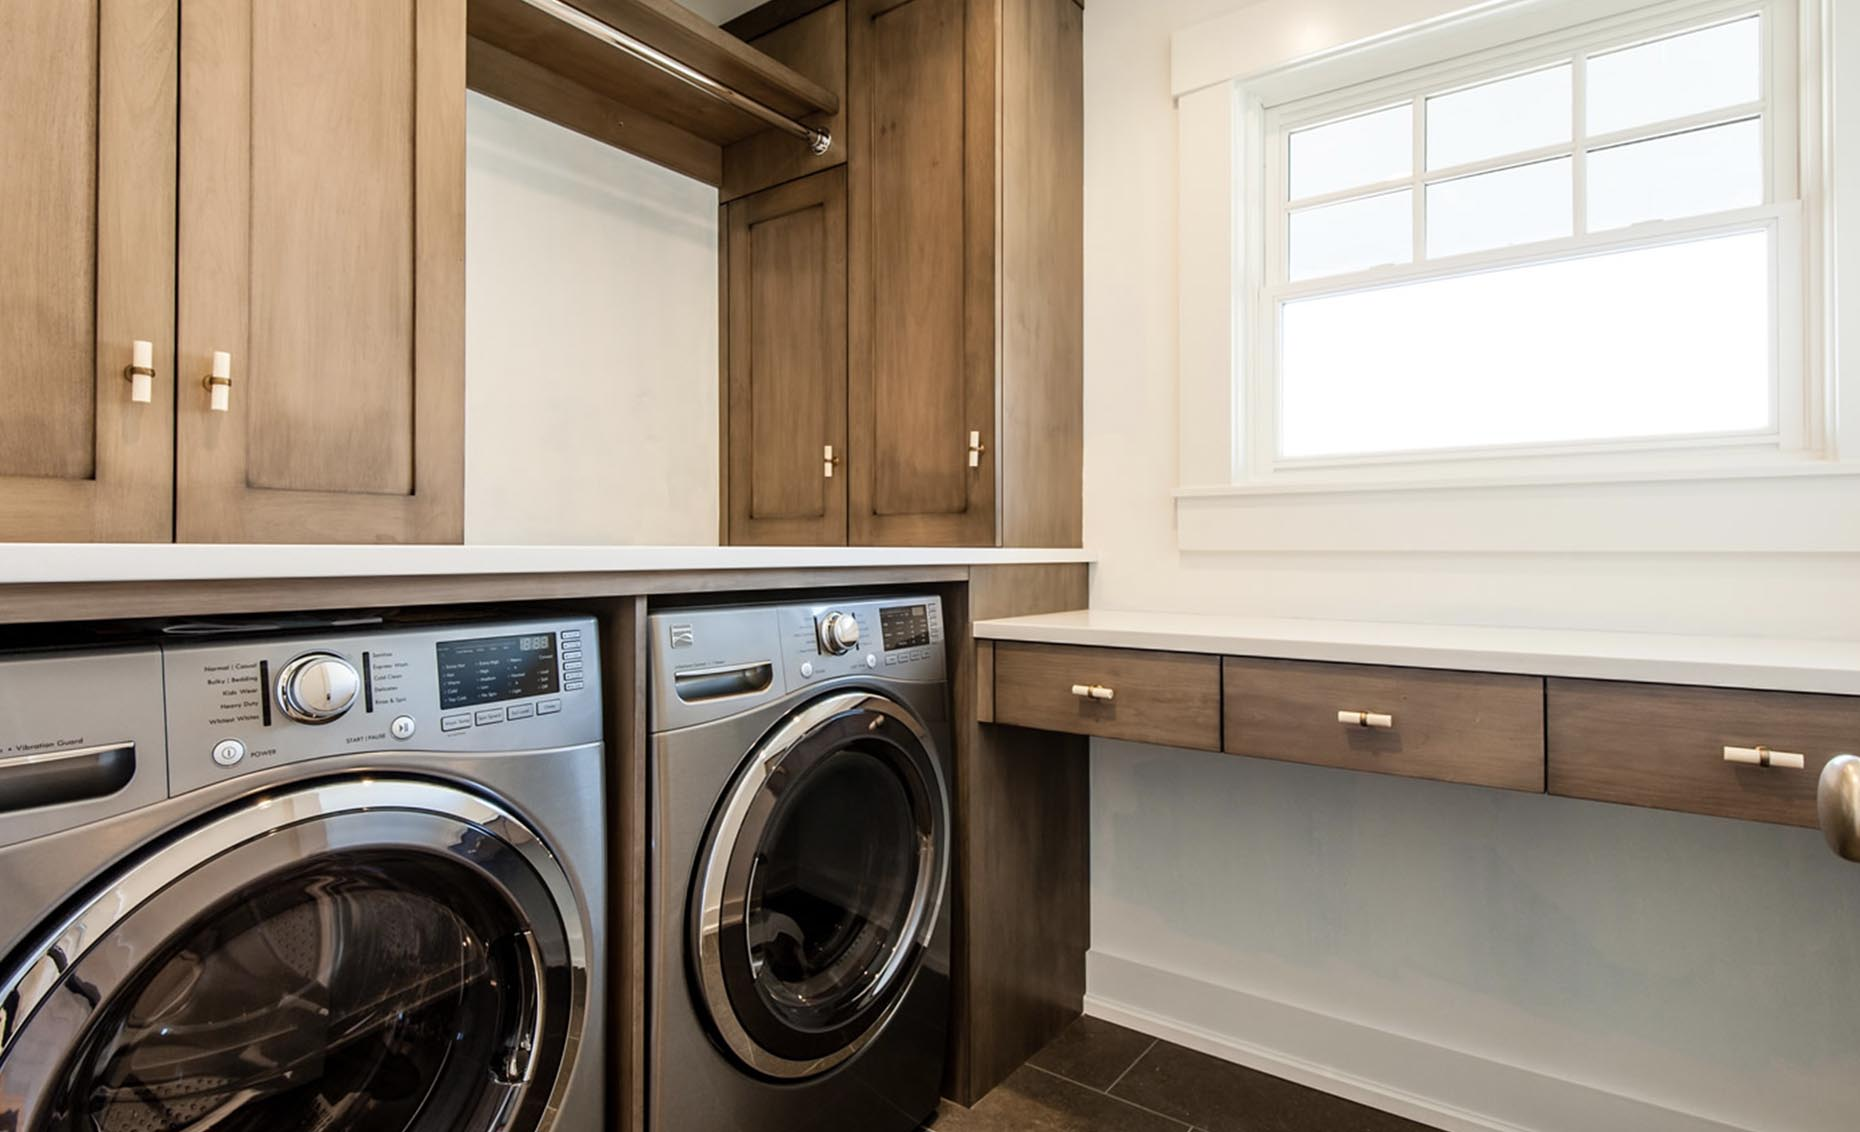 The Bungalow House Laundry Room